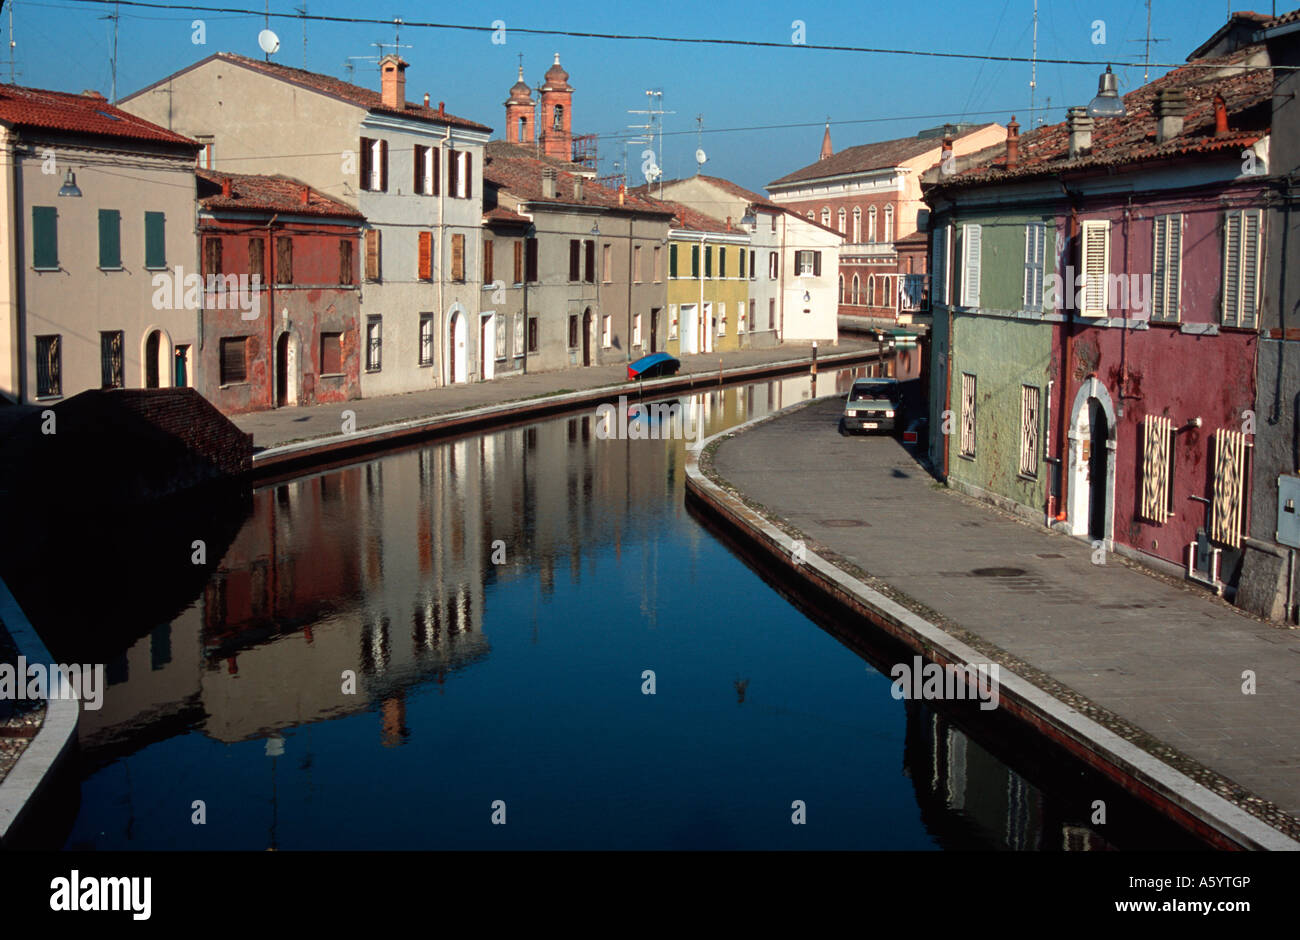 Painet in3101 canal via san pietro comacchio emiliaromagna italy area buildings burghal center central city civic - Stock Image